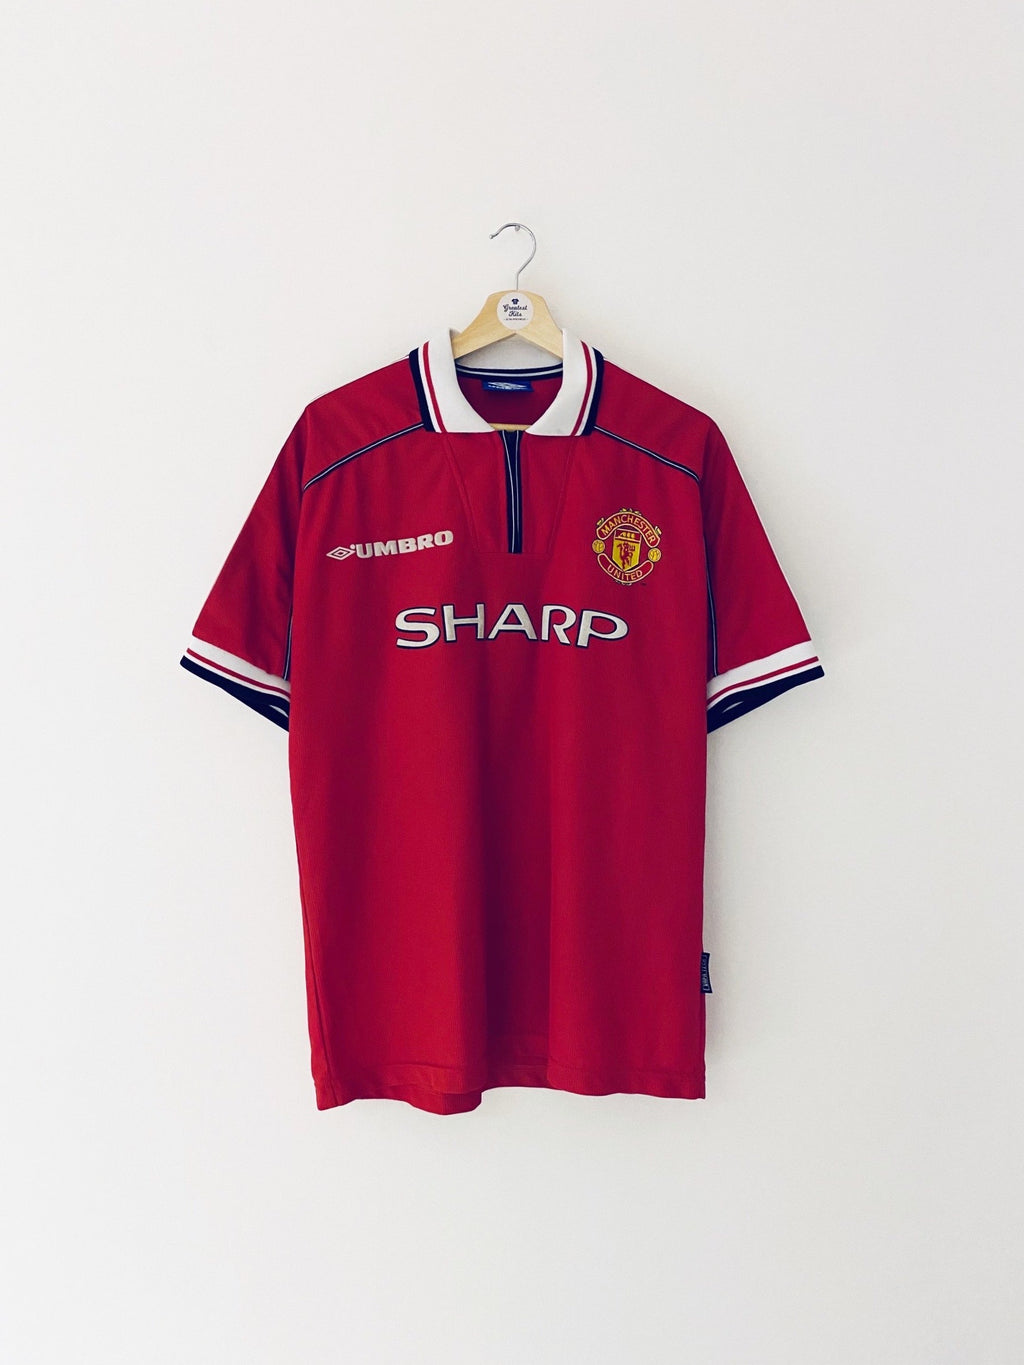 1998/00 Manchester United Home Shirt (L) 7.5/10